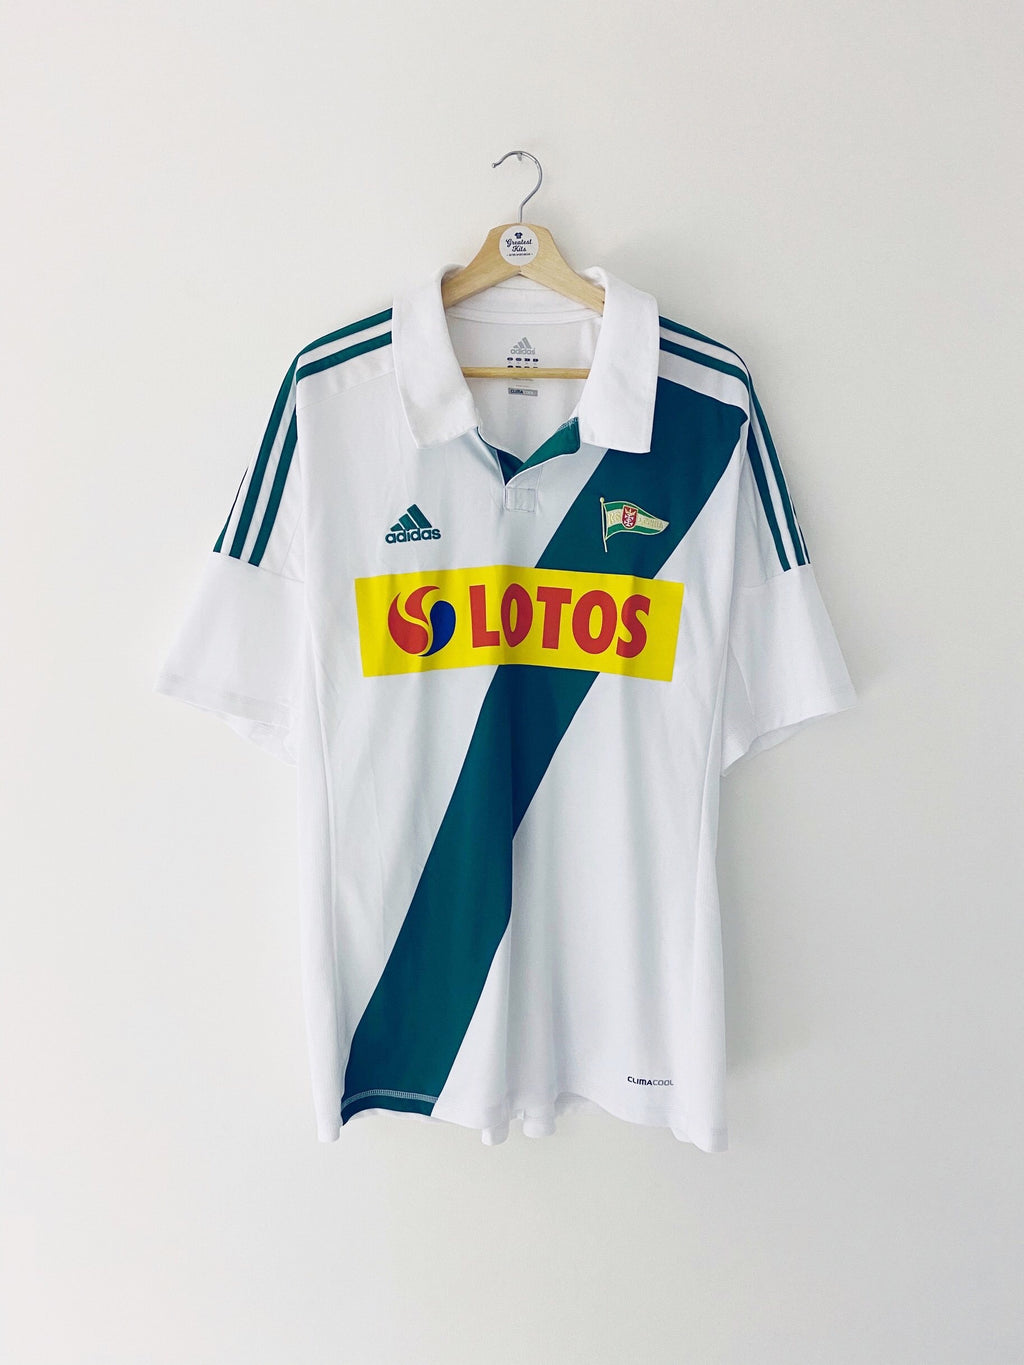 2012/13 Lechia Gdansk Home Shirt (XL) 9/10